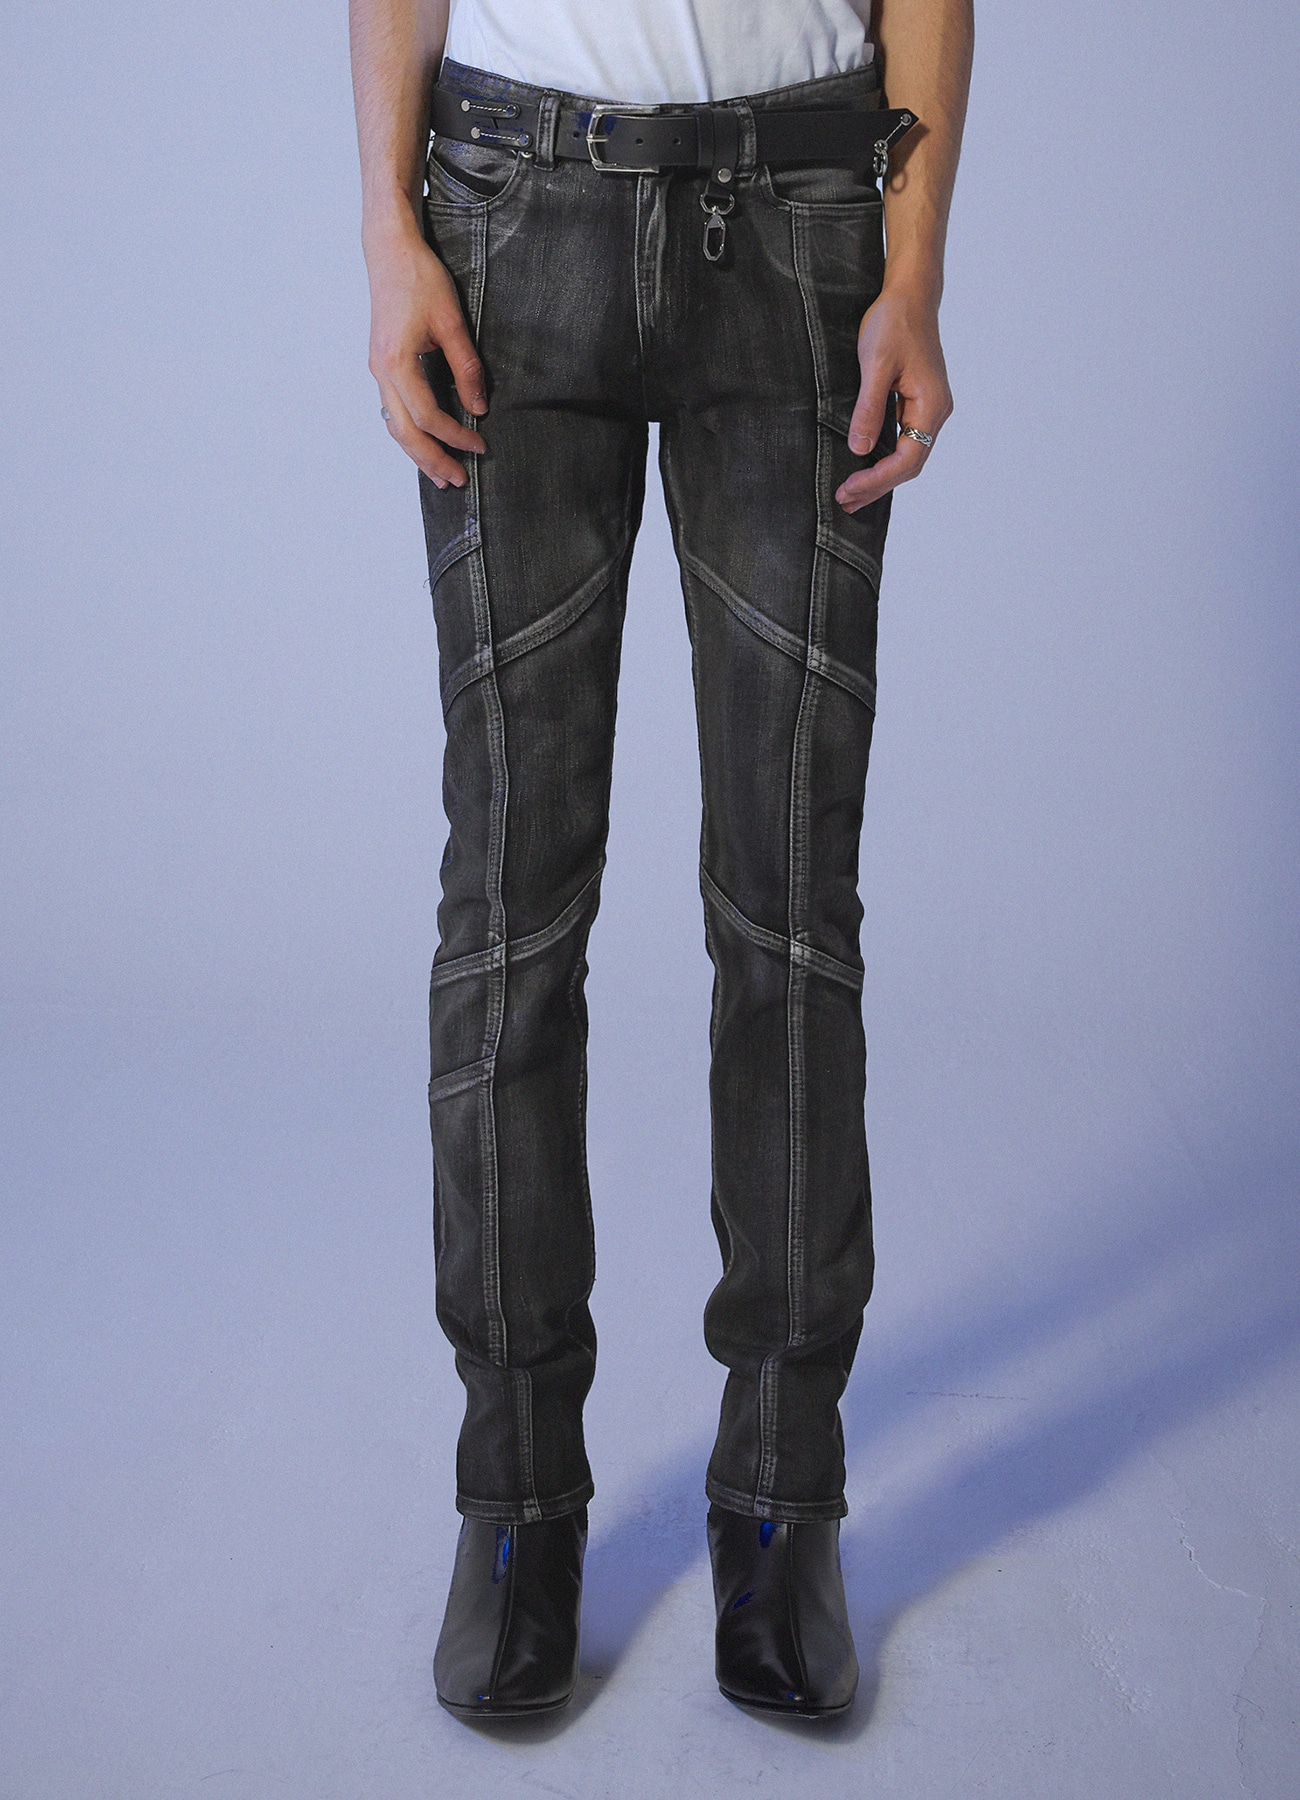 Foggy Dew Biker jeans - Black [10/29일 예약발송]